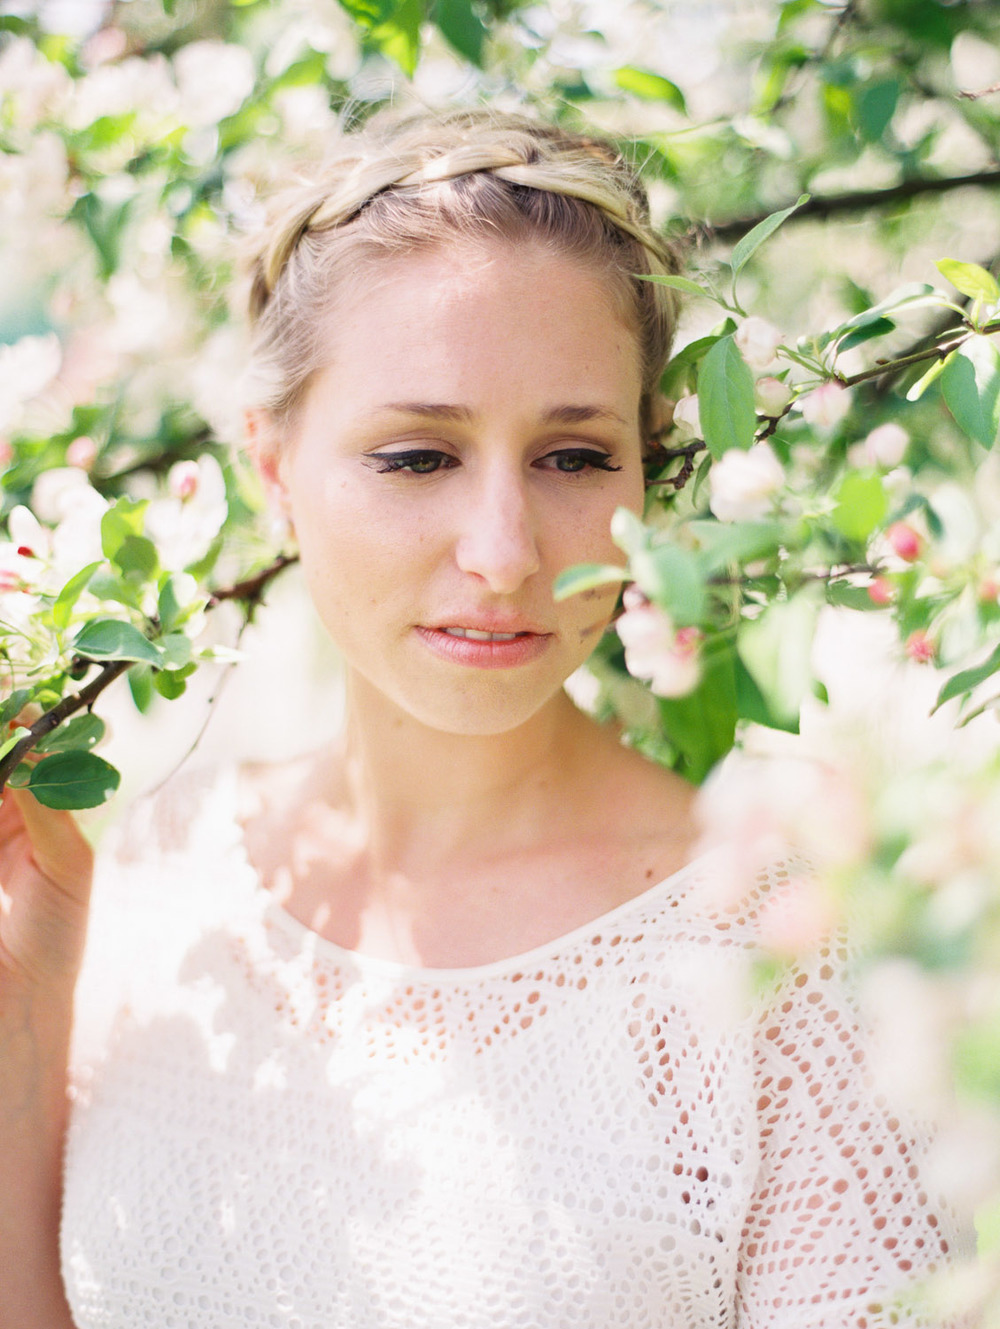 kateweinsteinphoto_molly_cherryblossoms8.jpg